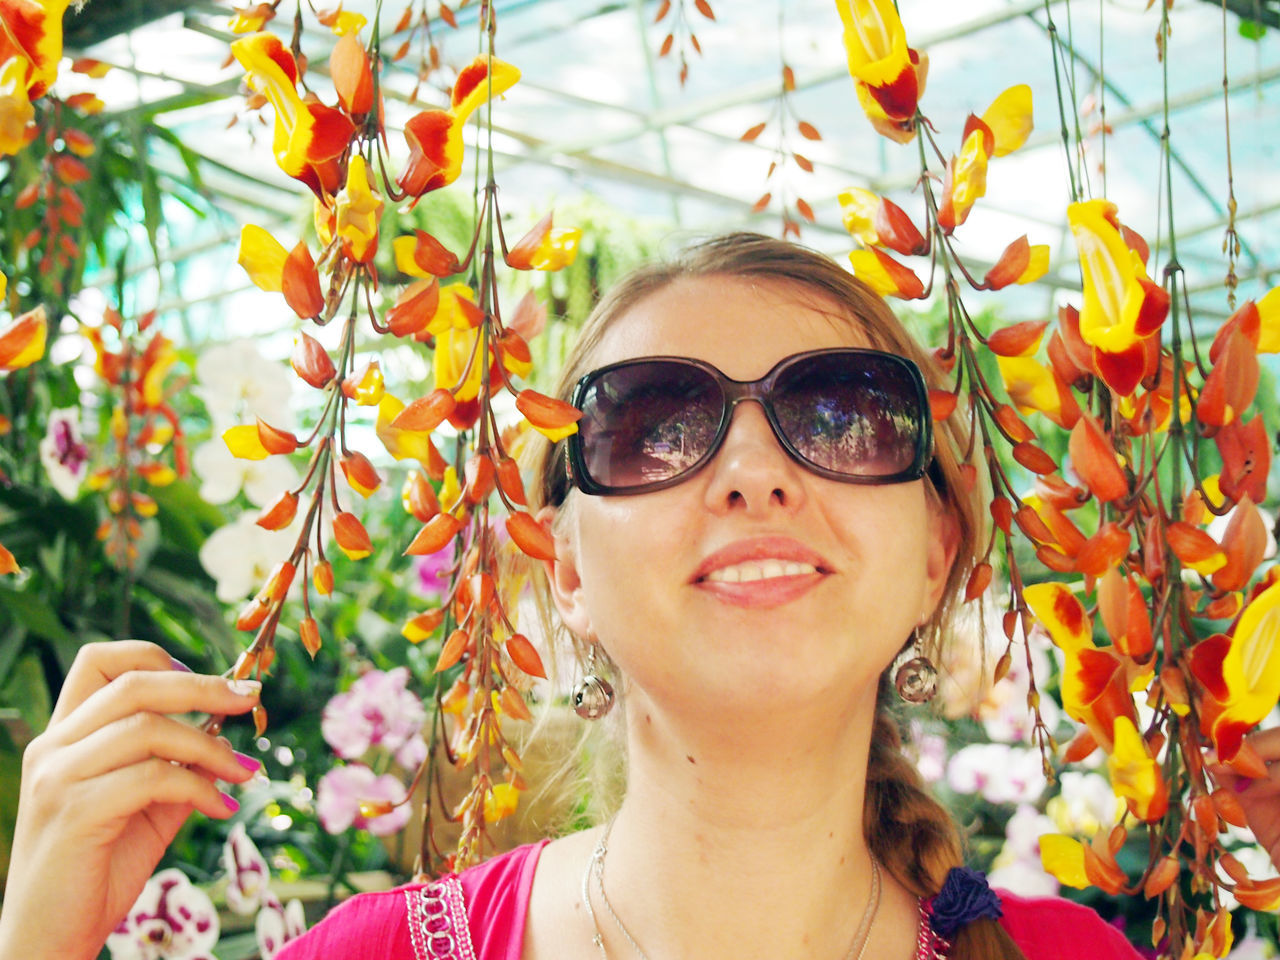 Young Woman Wearing Sunglasses Amidst Orchids In Greenhouse